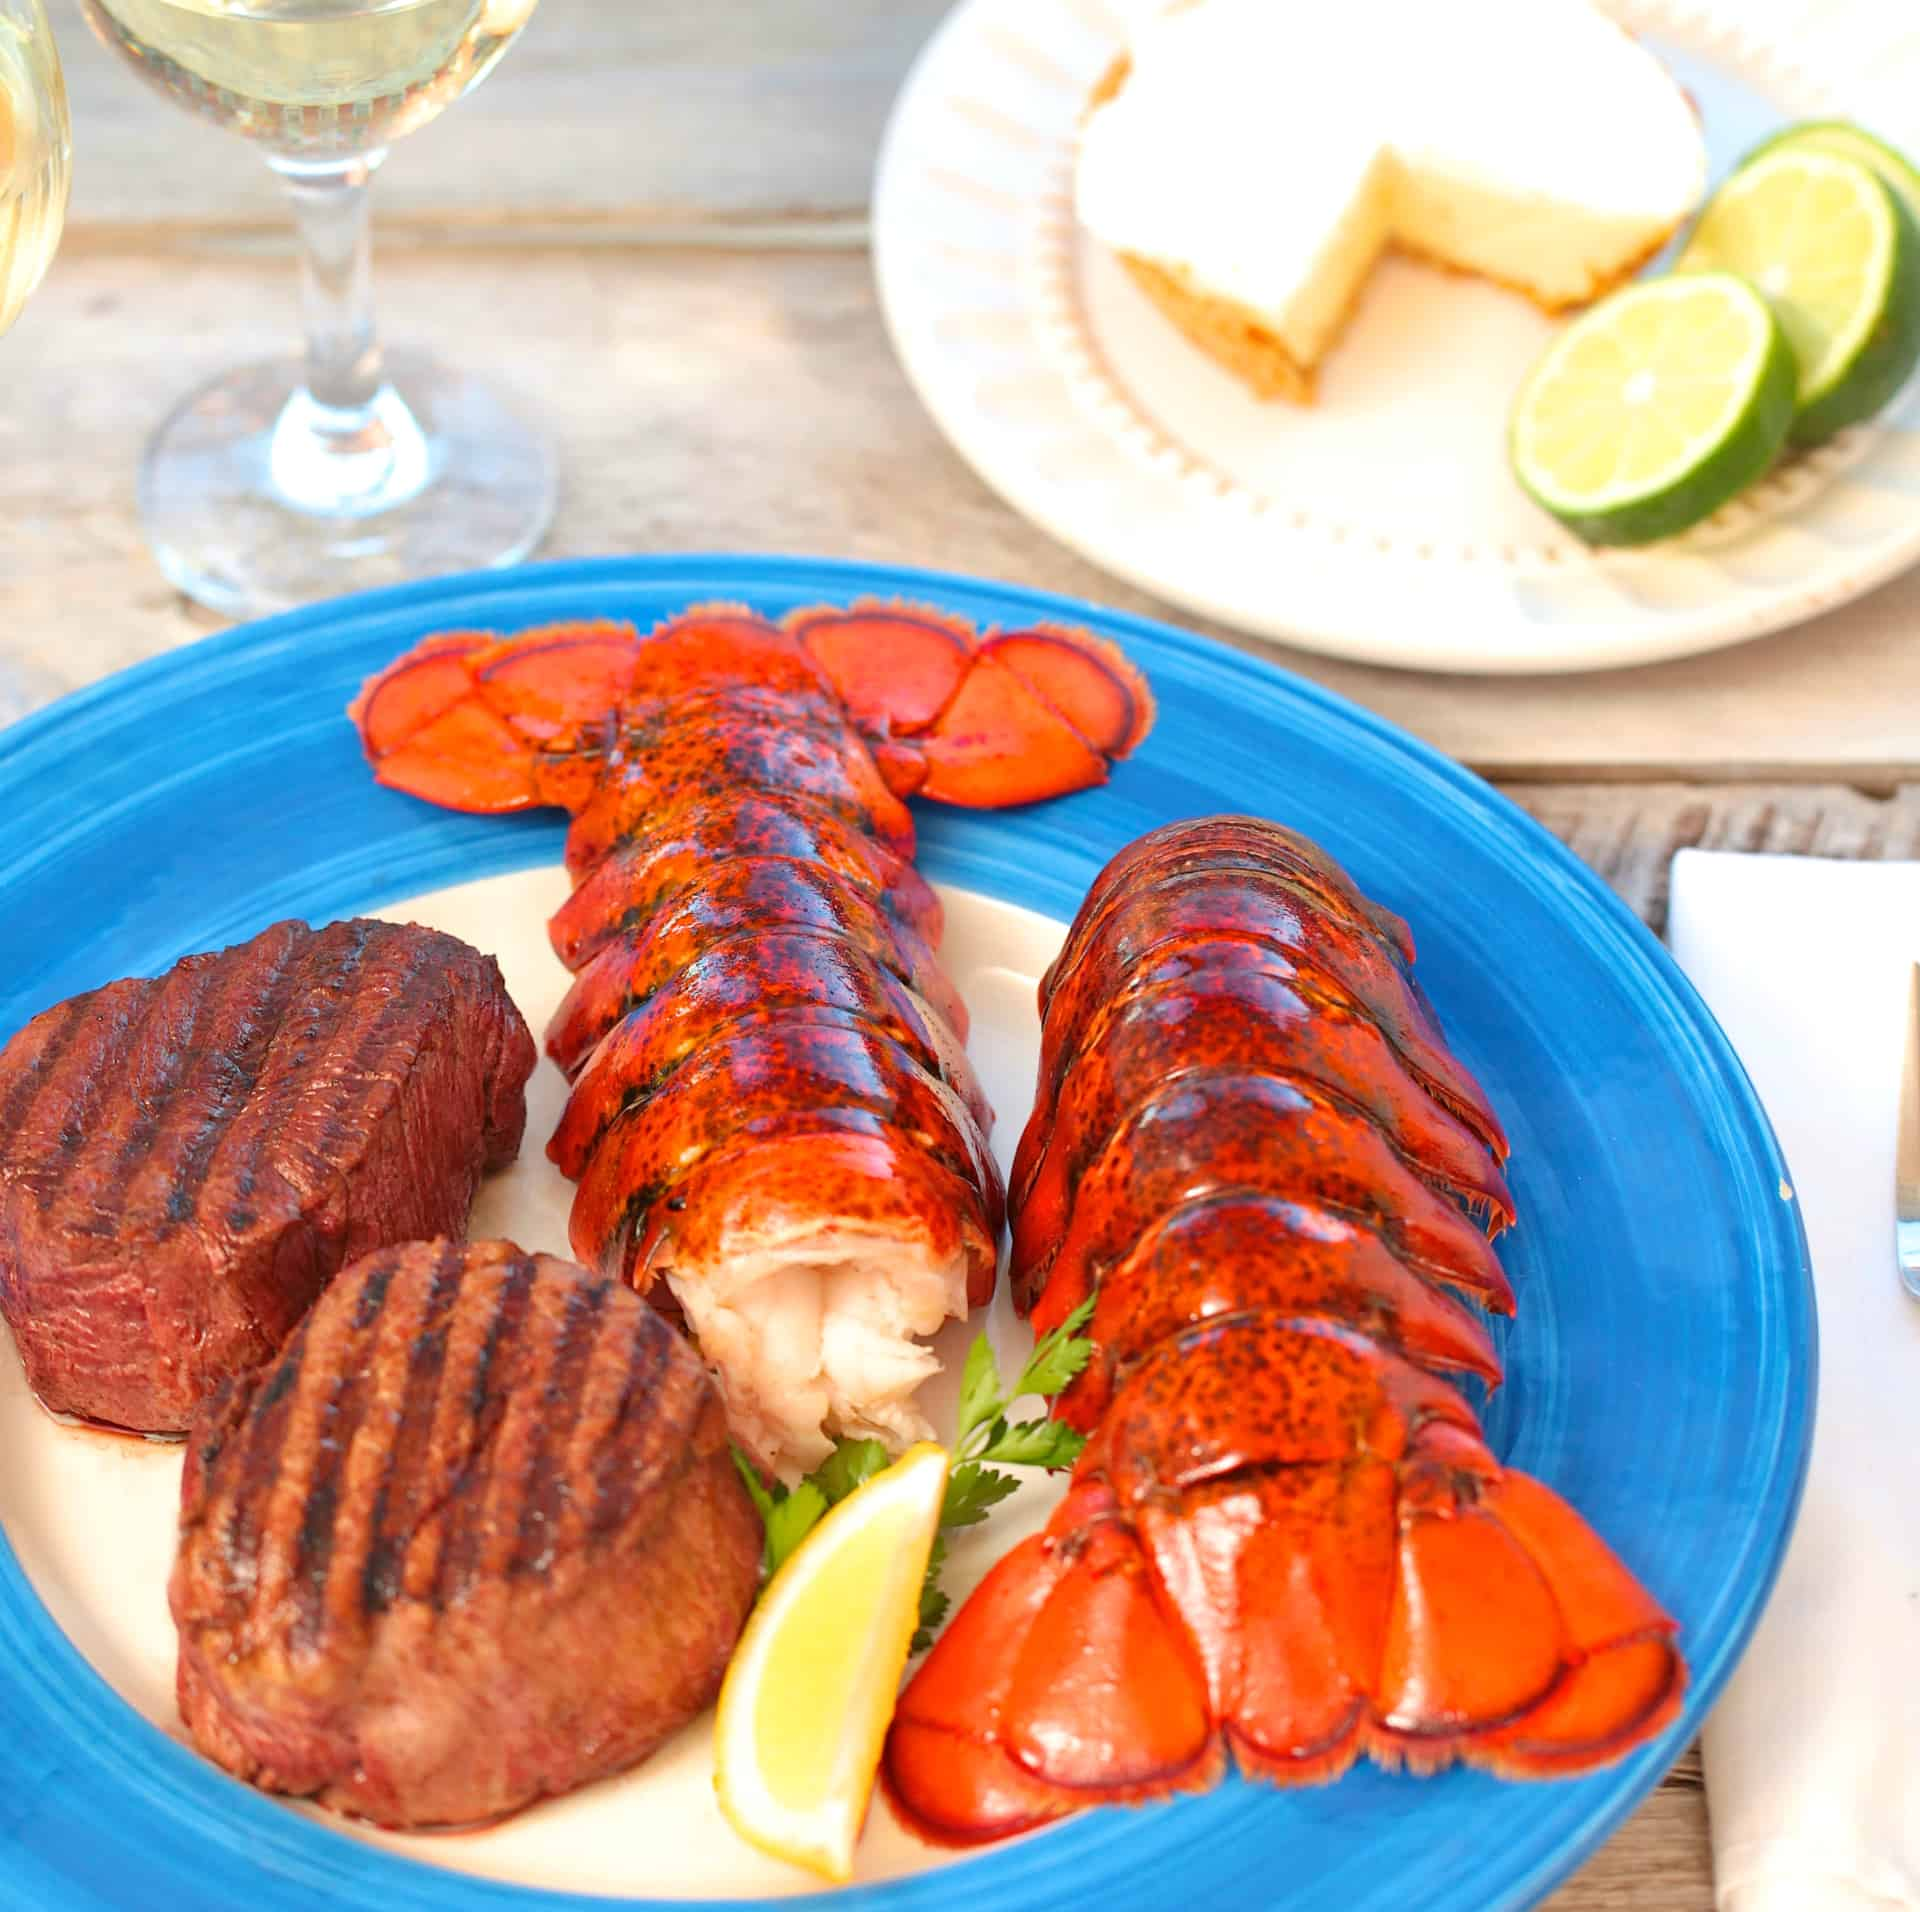 Steak and Lobster Gift - Filet Mignon ...